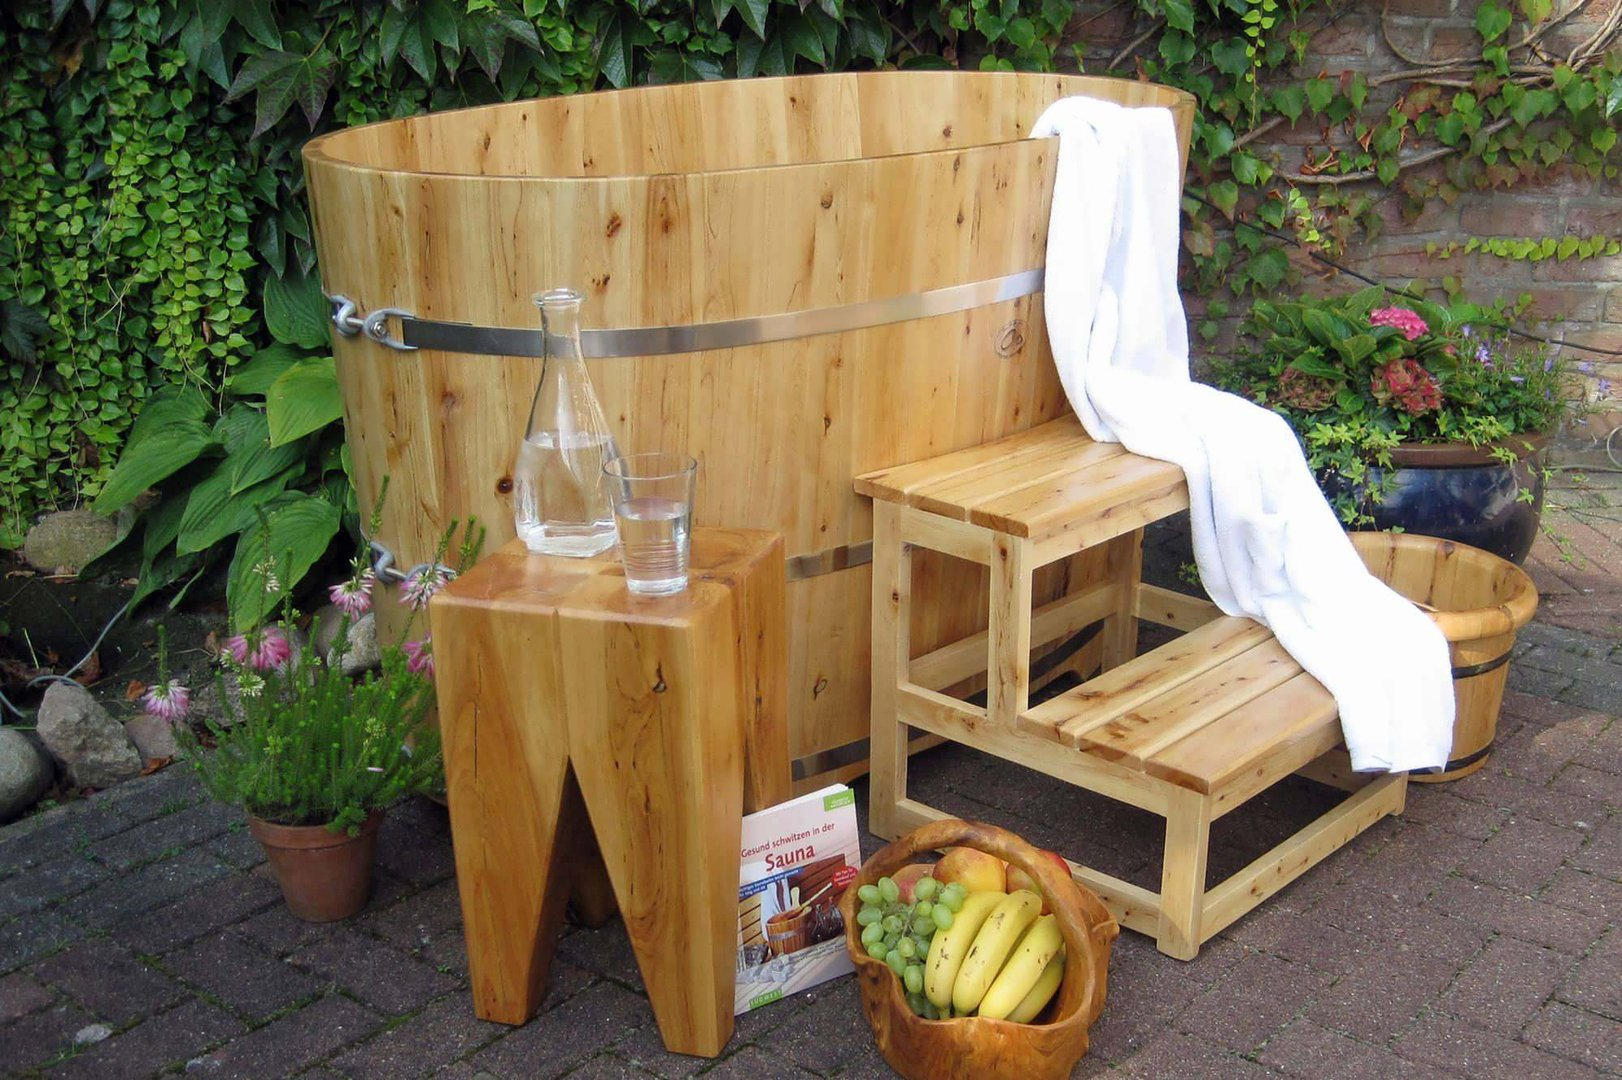 sauna tauchbecken garten tauchbecken im garten stabile als mini pool hochbeet teich sauna. Black Bedroom Furniture Sets. Home Design Ideas